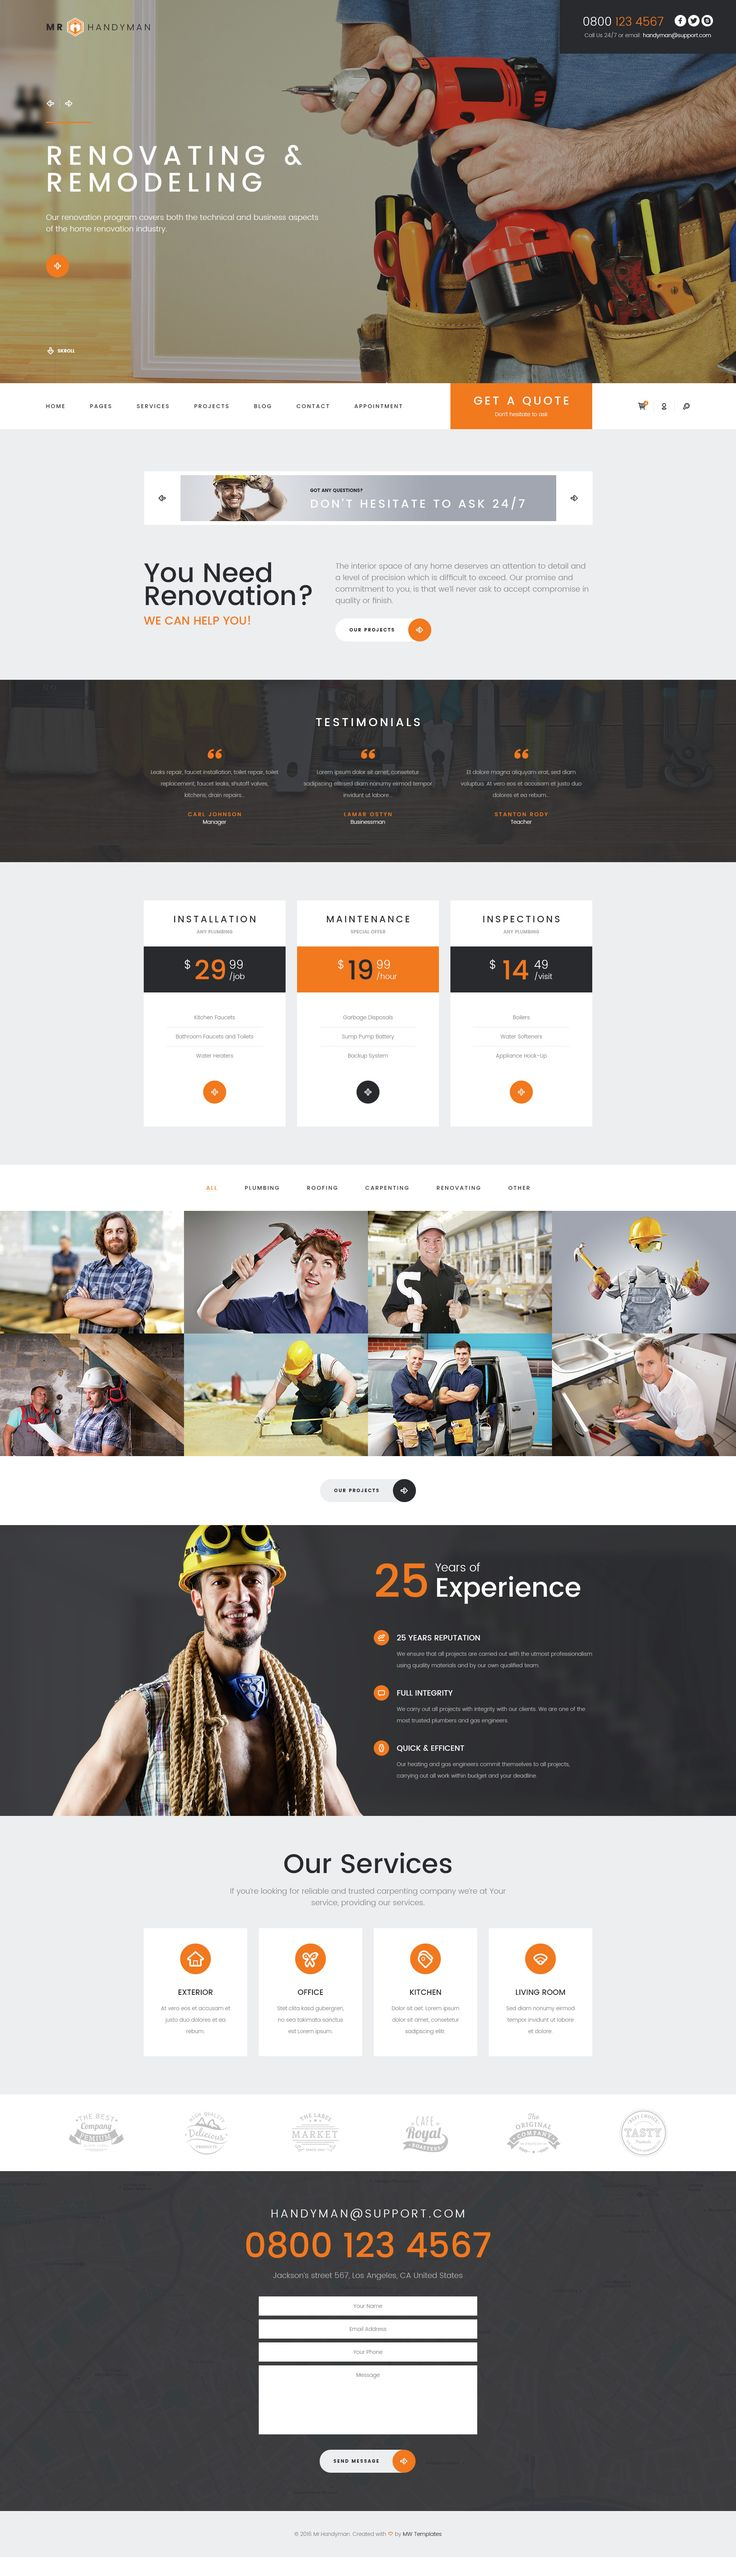 Mr. Handyman WordPress theme is a well-designed, unique and stylish theme for a handyman, plumber, electrician, contractor or any other business related to home maintenance, renovation, construction and repair works.